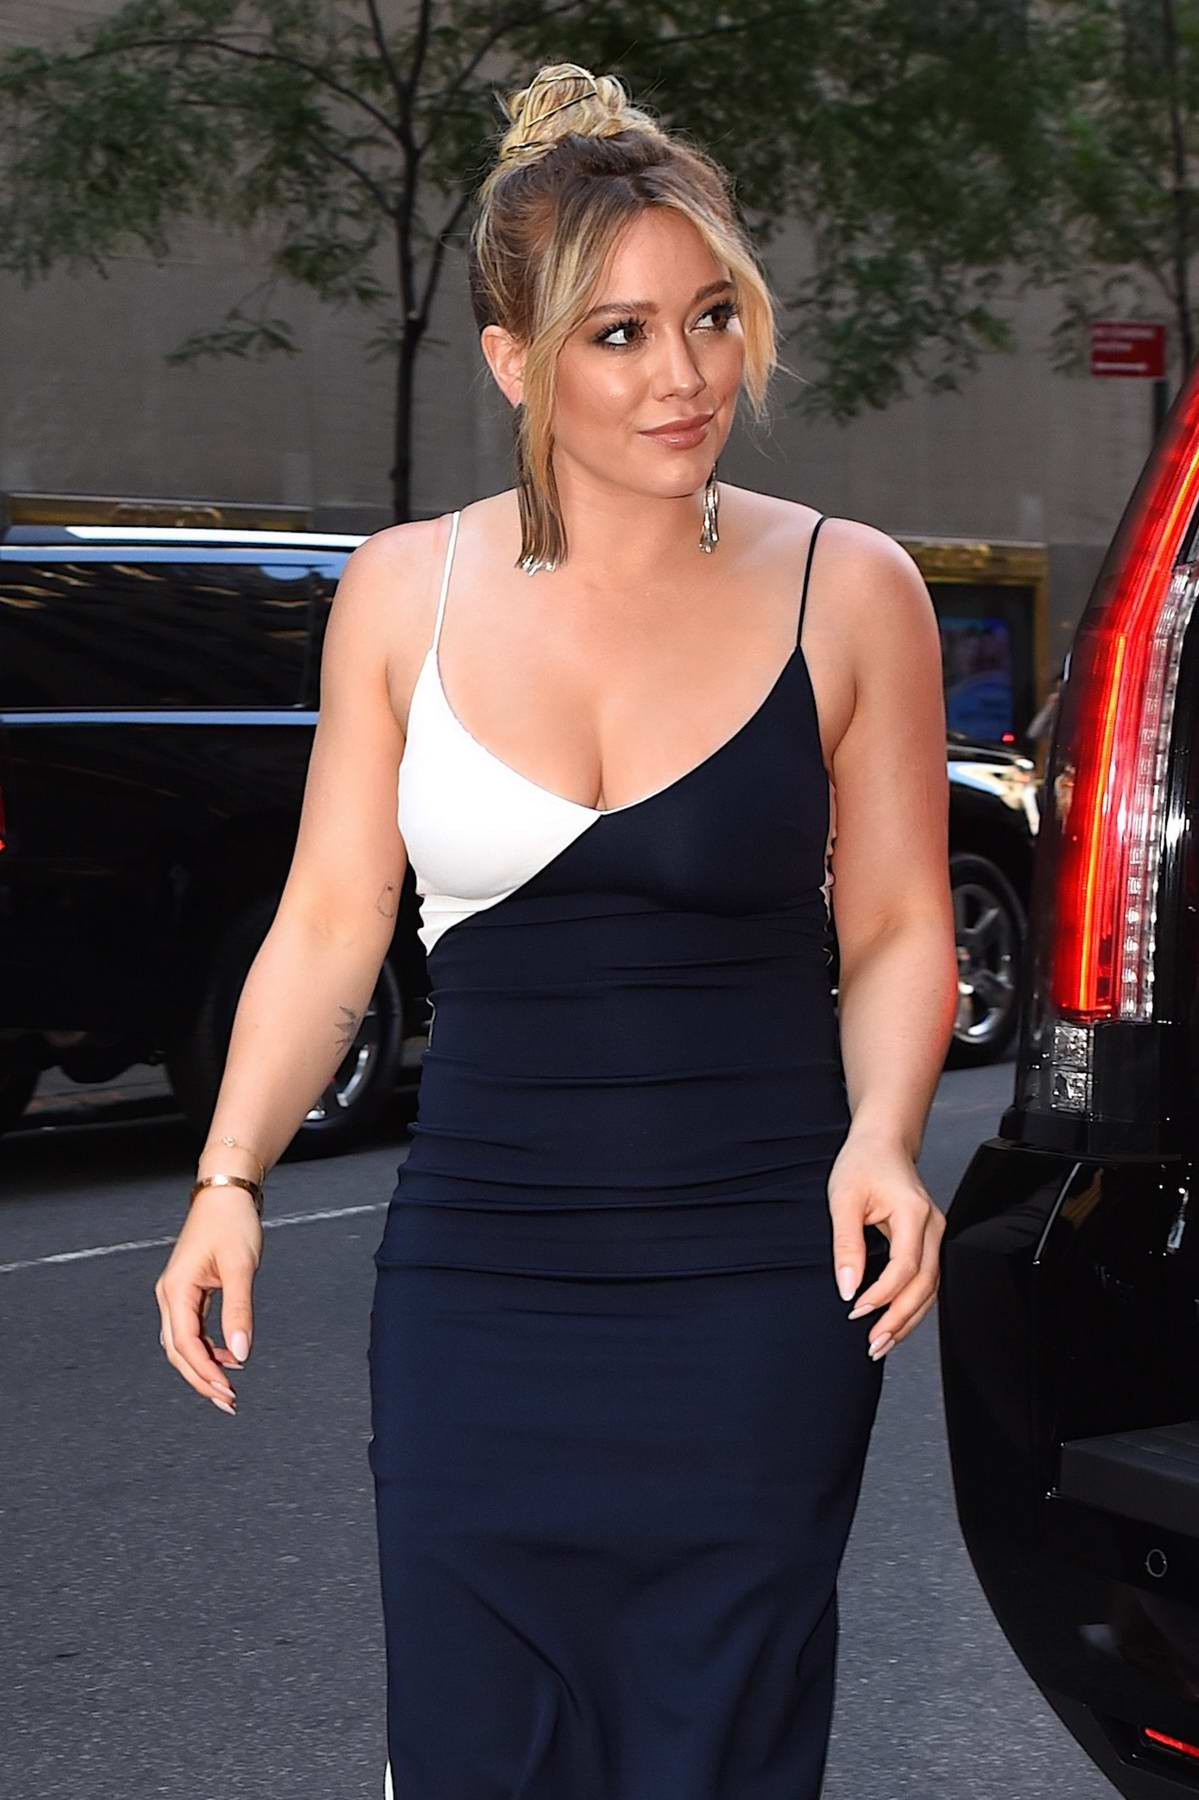 Hilary Duff arriving at The Tonight Show Starring Jimmy Fallon in New York